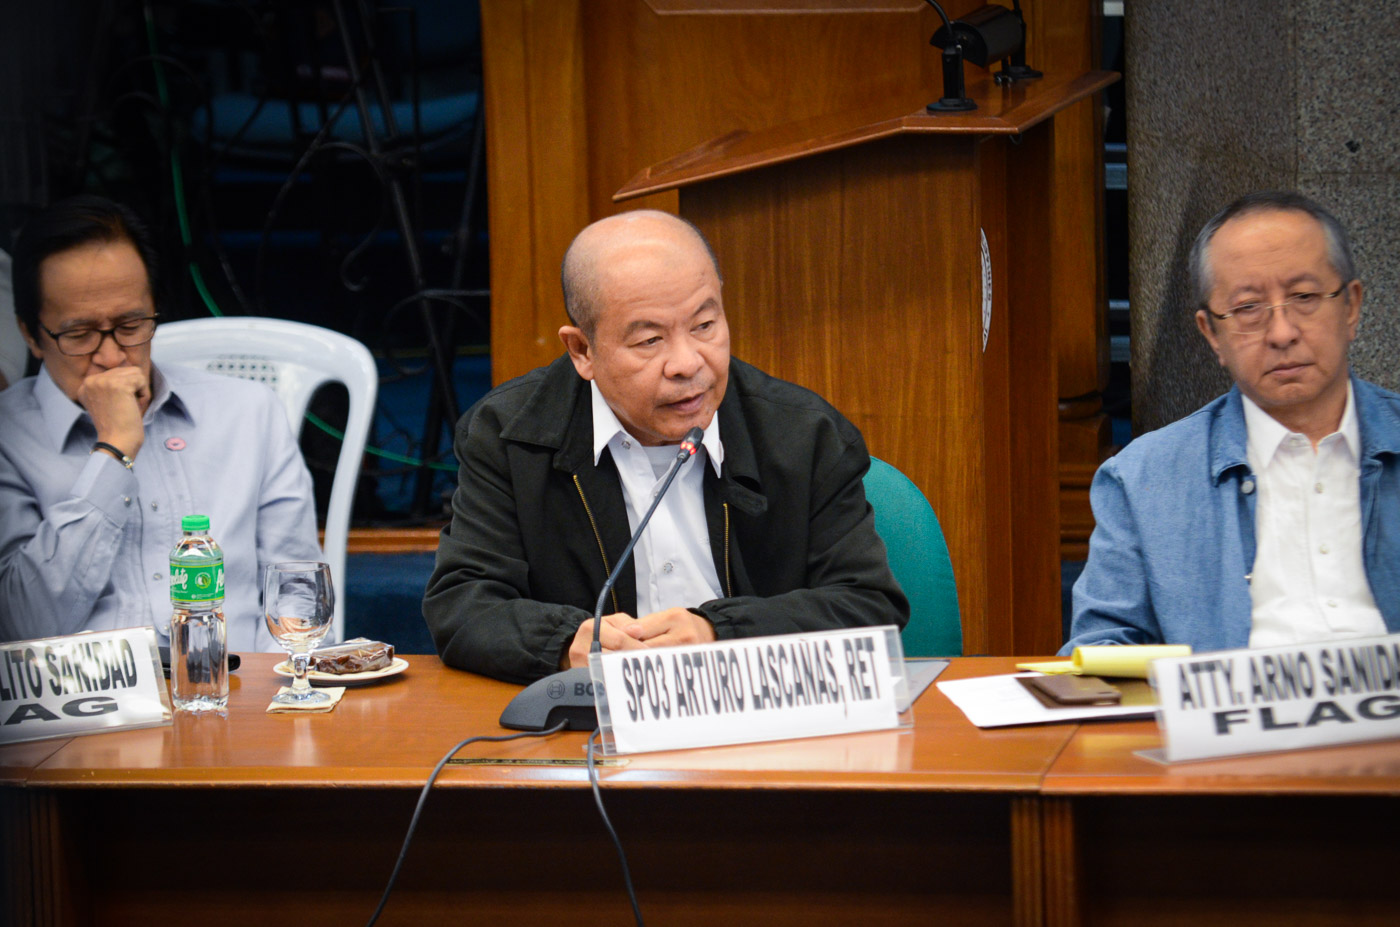 DDS MEMBER? Retired Davao cop Arturo Lascau00f1as during his testimony before the Senate on March 6, 2017. File photo by LeAnne Jazul/Rappler